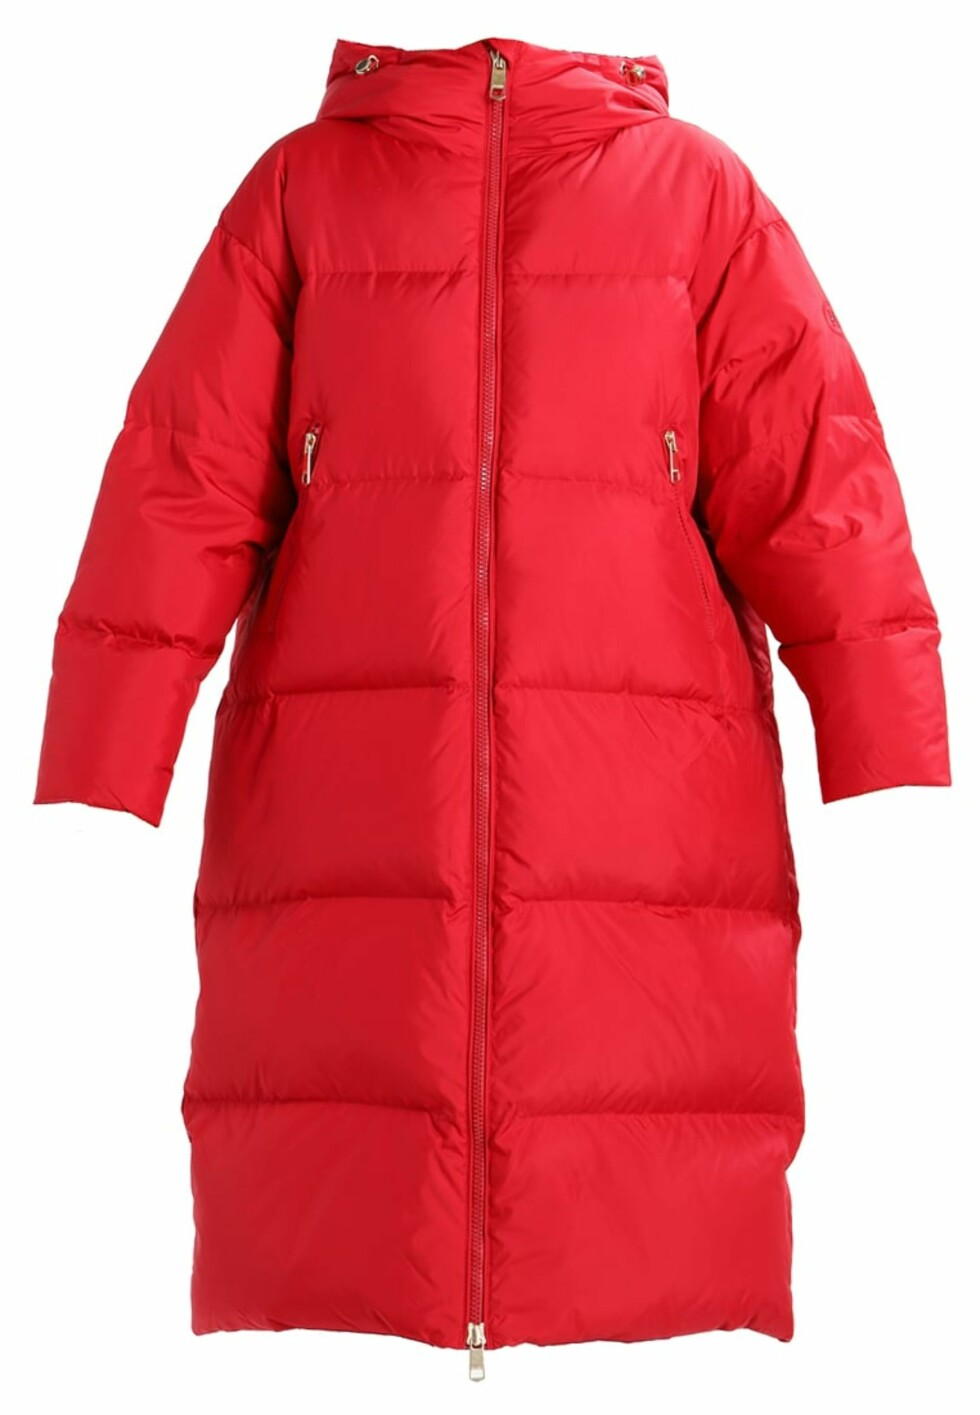 Boblejakke fra Tommy Hilfiger |3035,-| https://www.zalando.no/tommy-hilfiger-courtney-midi-dunkape-red-to121u00y-g11.html